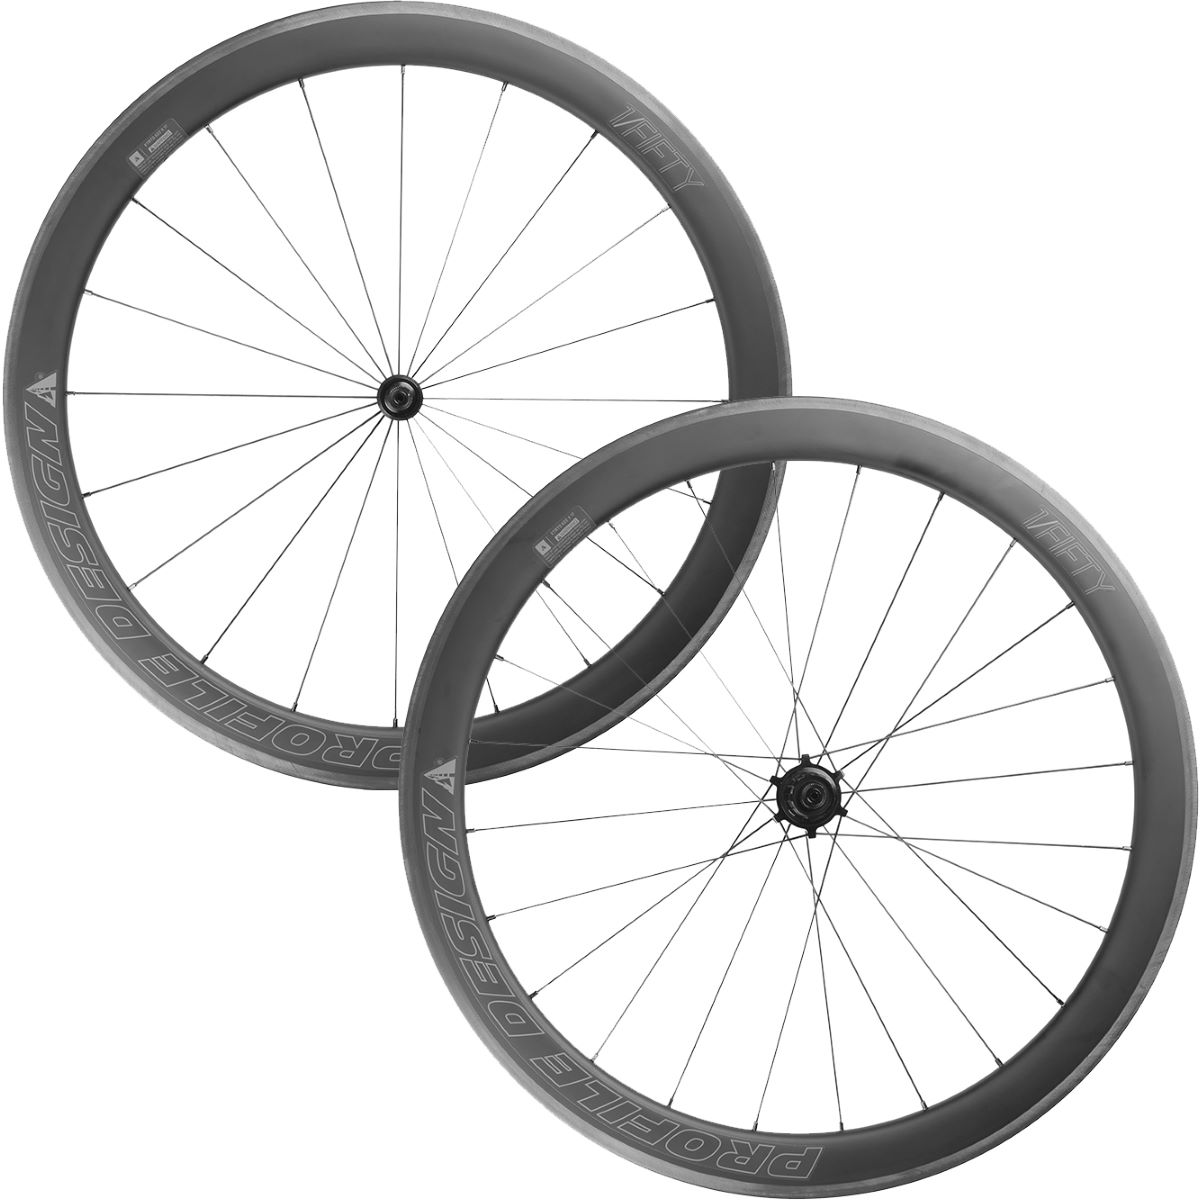 Profile Design 1 / Fifty Full Carbon Clincher Wheelset - 700c Shimano/SRAM Noir Roues performance